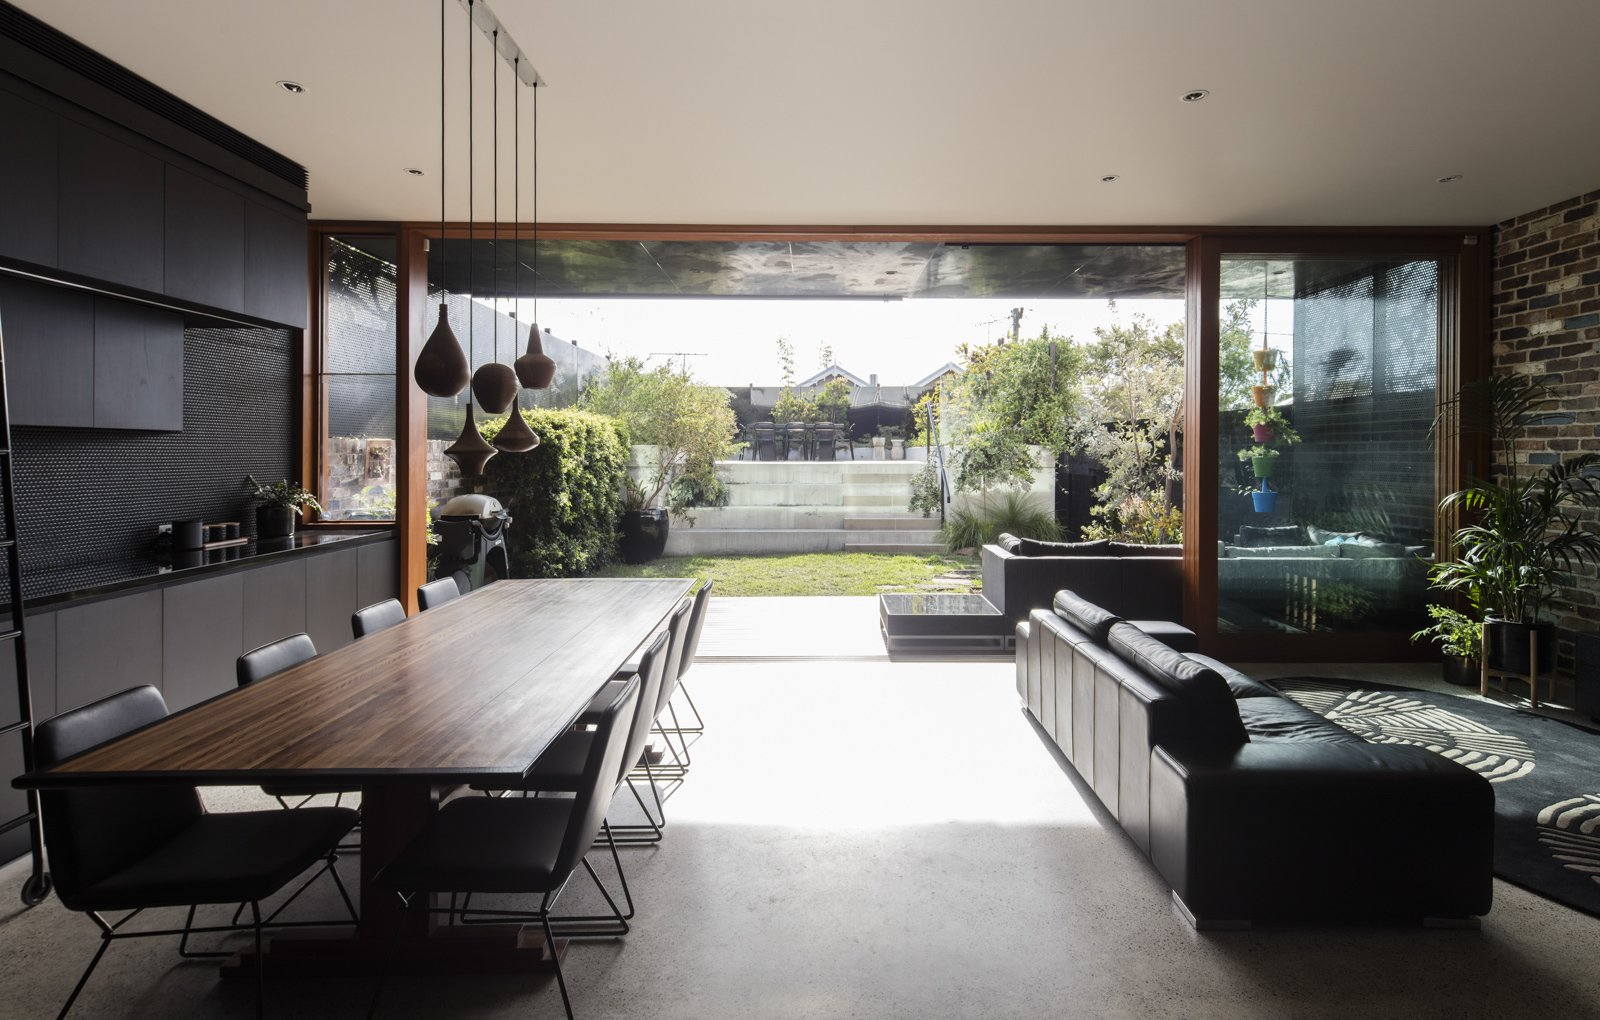 Living, Table, Storage, Chair, Sofa, Concrete, Pendant, Recessed, and Rug The view out to the garden.  Living Storage Pendant Concrete Photos from A Dark Sydney Home Finds Light With a Unifying Expansion